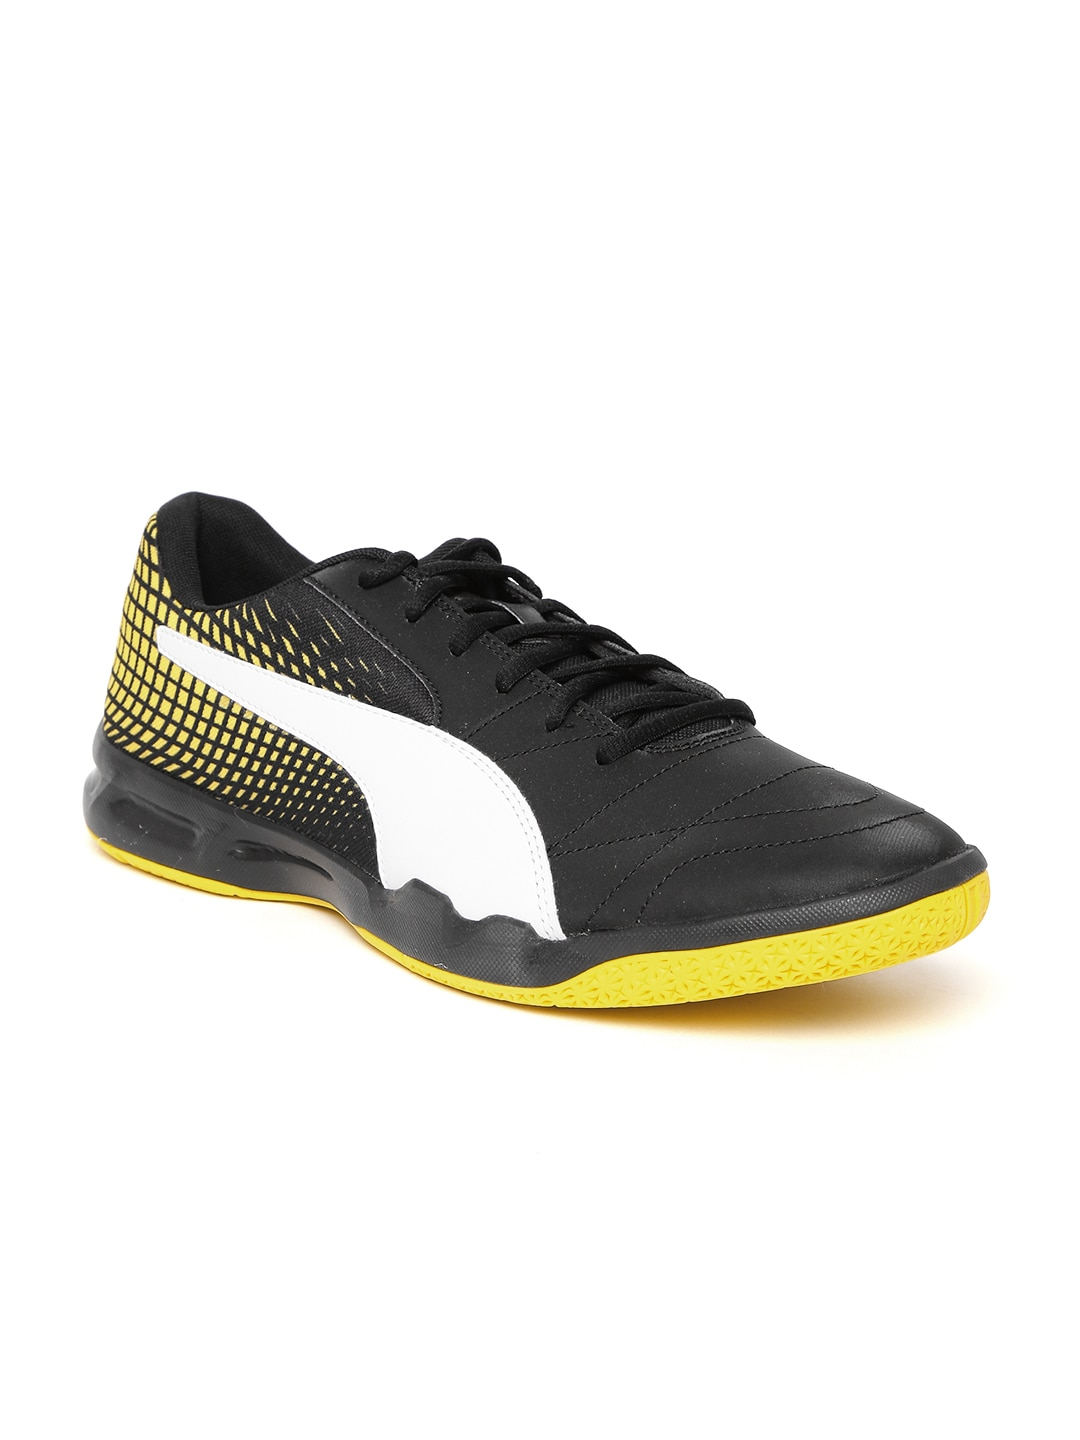 285fcf1b1fc Non Marking Badminton Shoe Synthetic - Buy Non Marking Badminton Shoe  Synthetic online in India